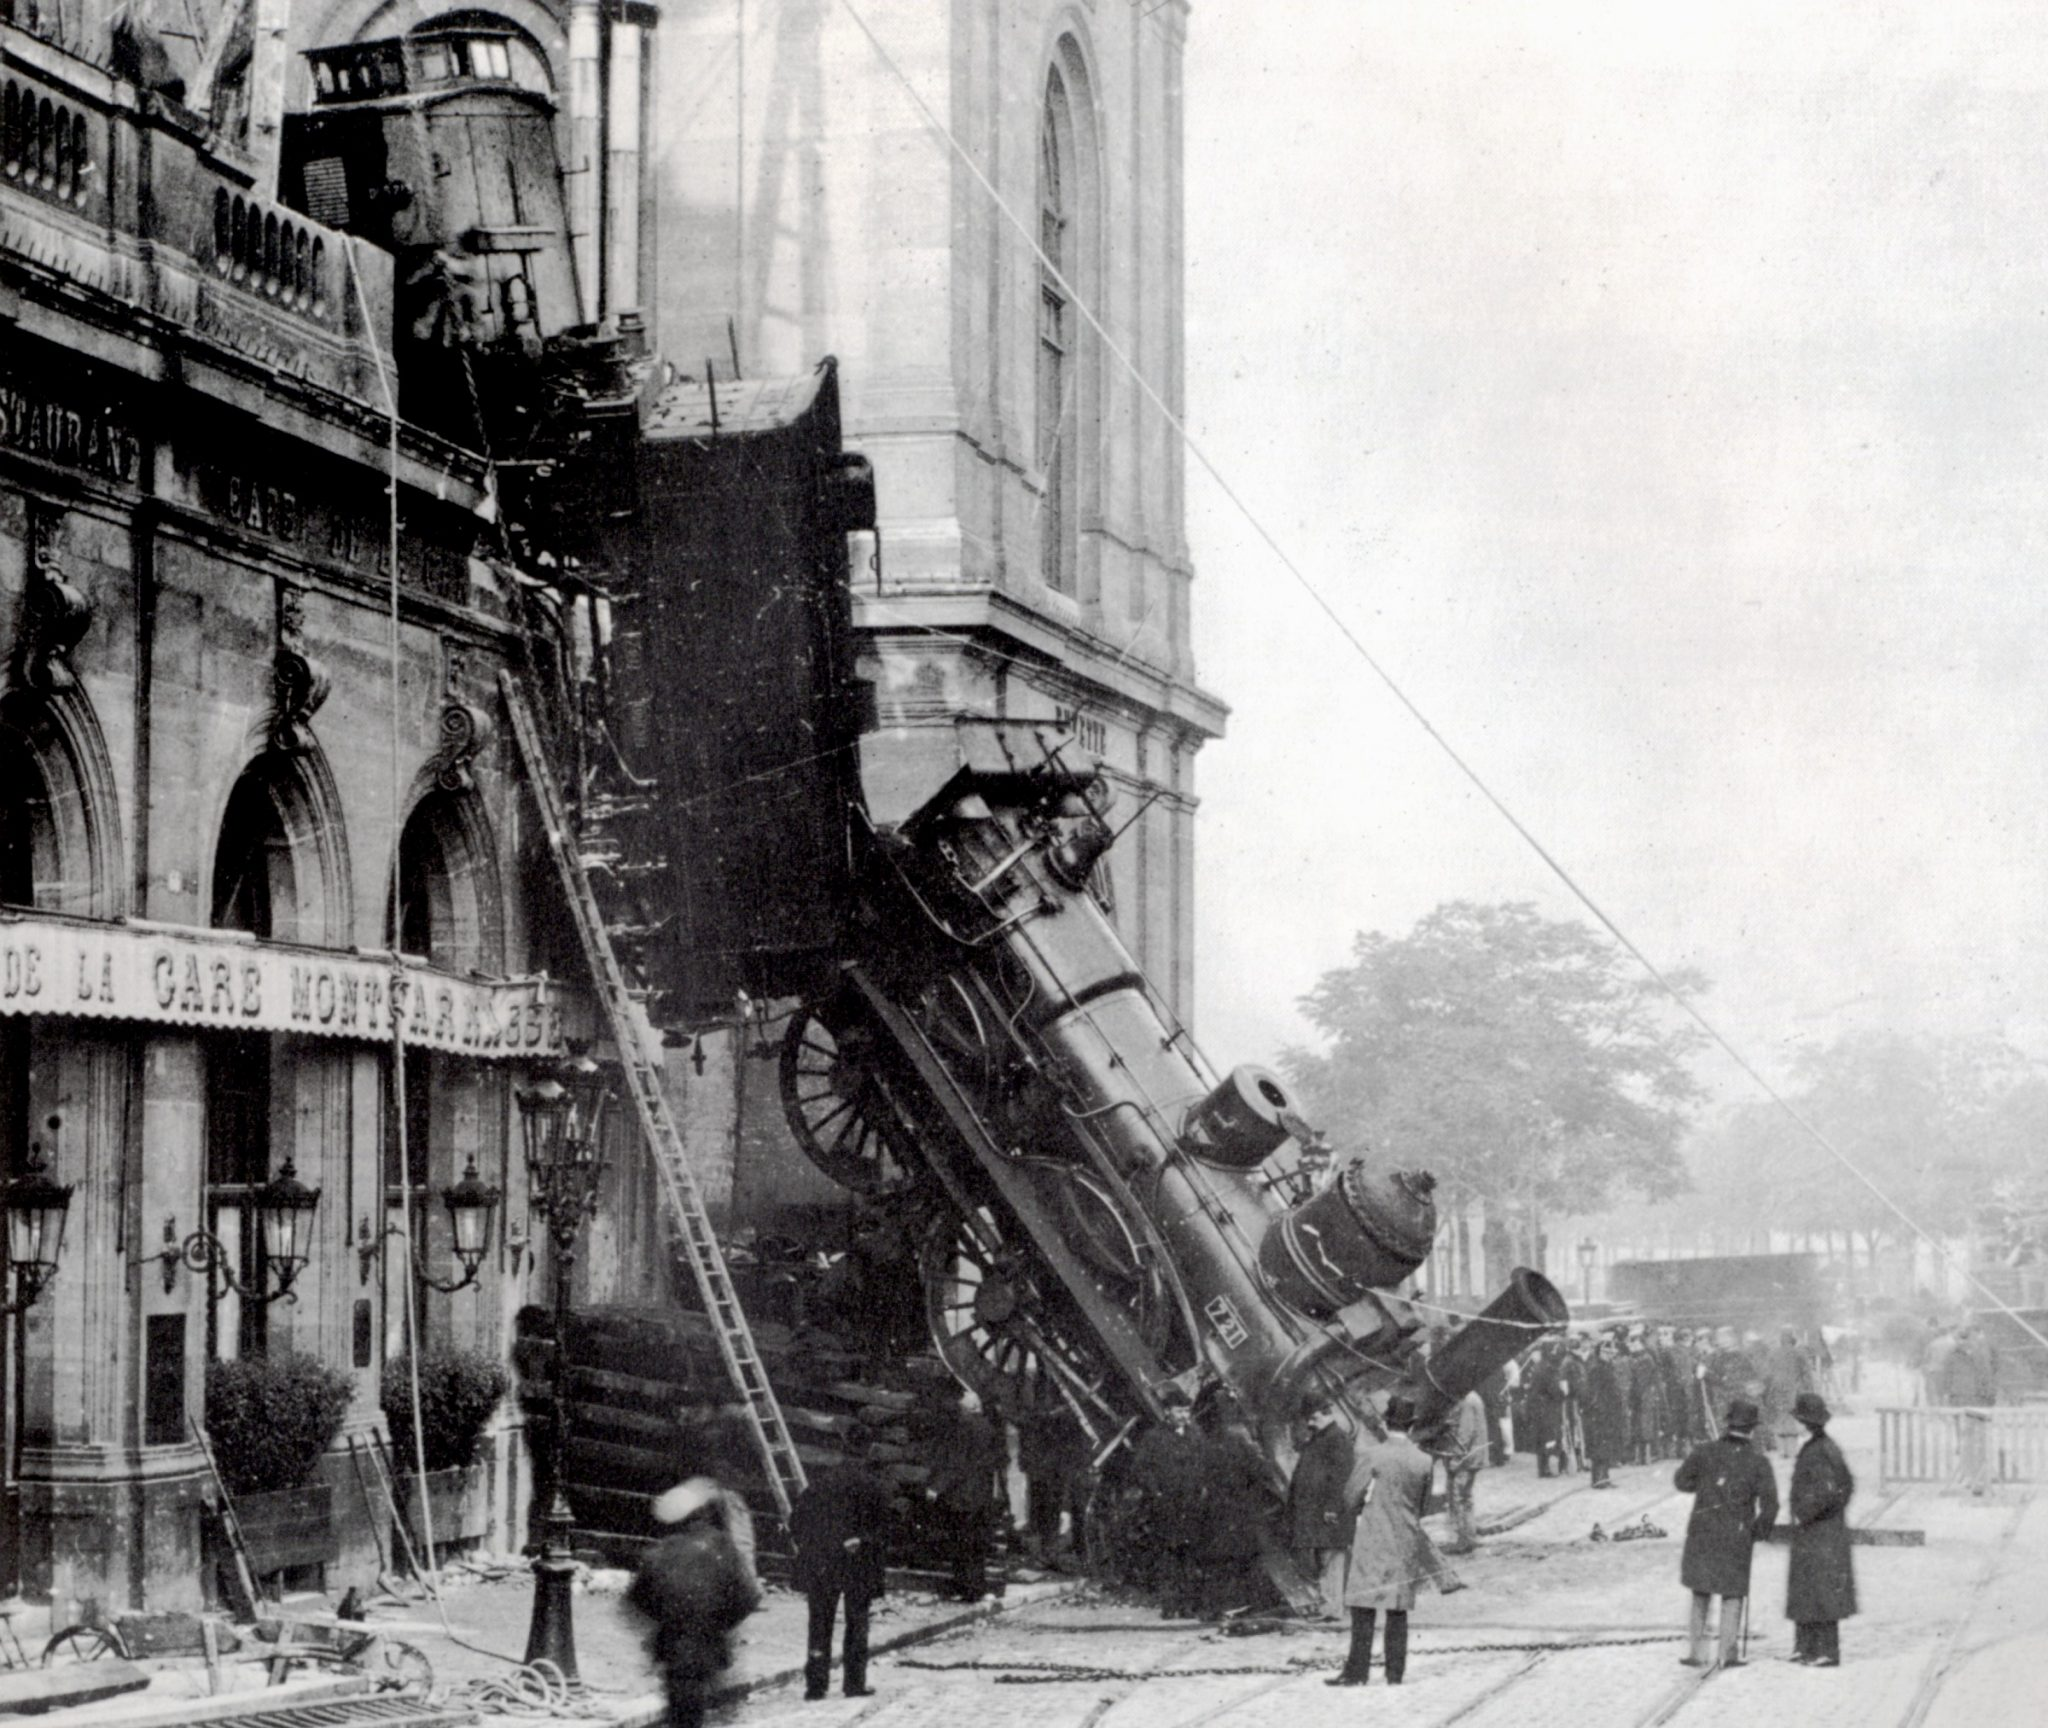 https://upload.wikimedia.org/wikipedia/commons/1/16/Train_wreck_at_Montparnasse_1895_2.jpg